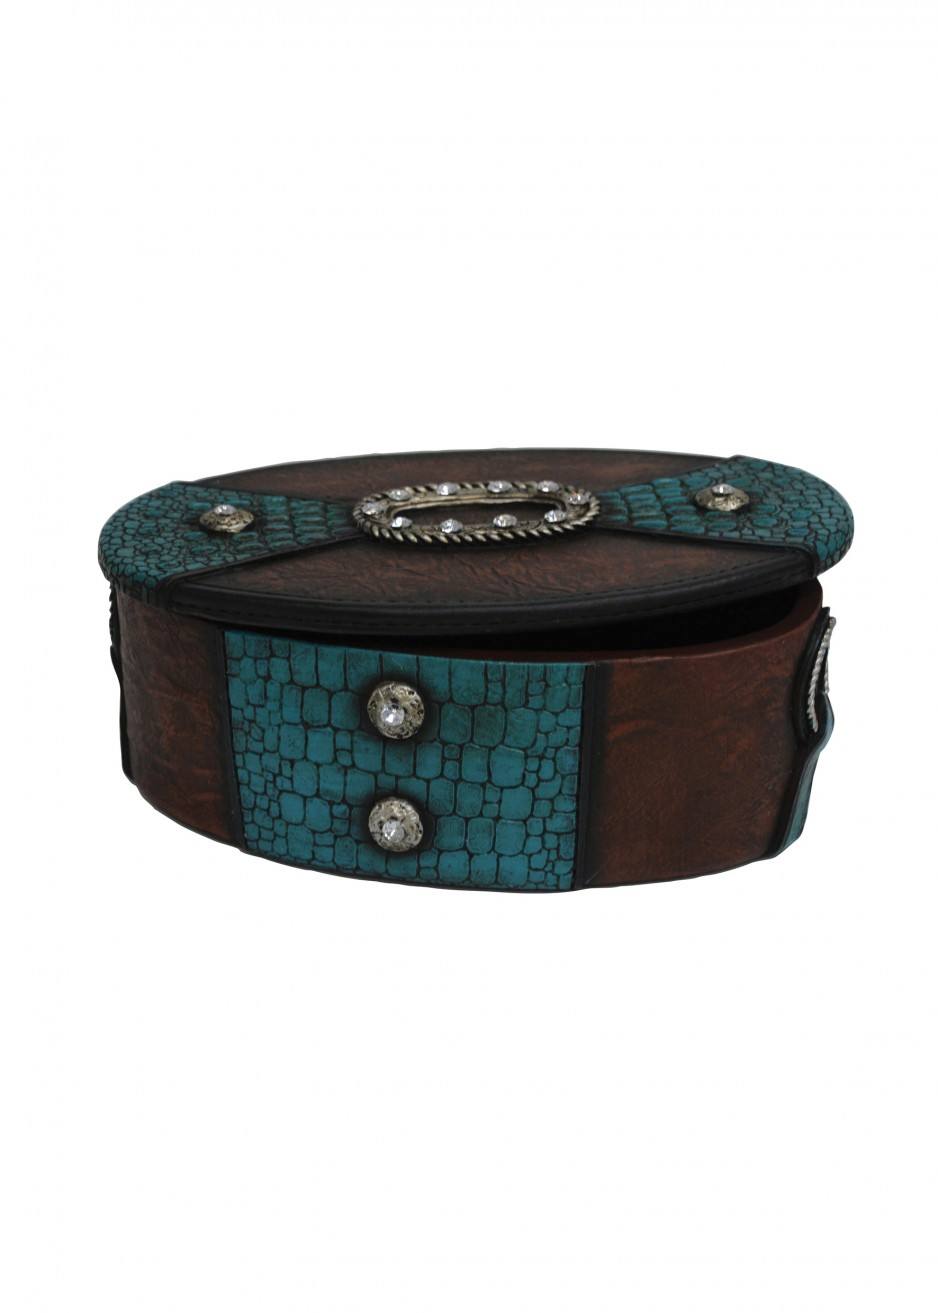 OVAL SNAKESKIN&BLING LARGE JEWELLERY BOX